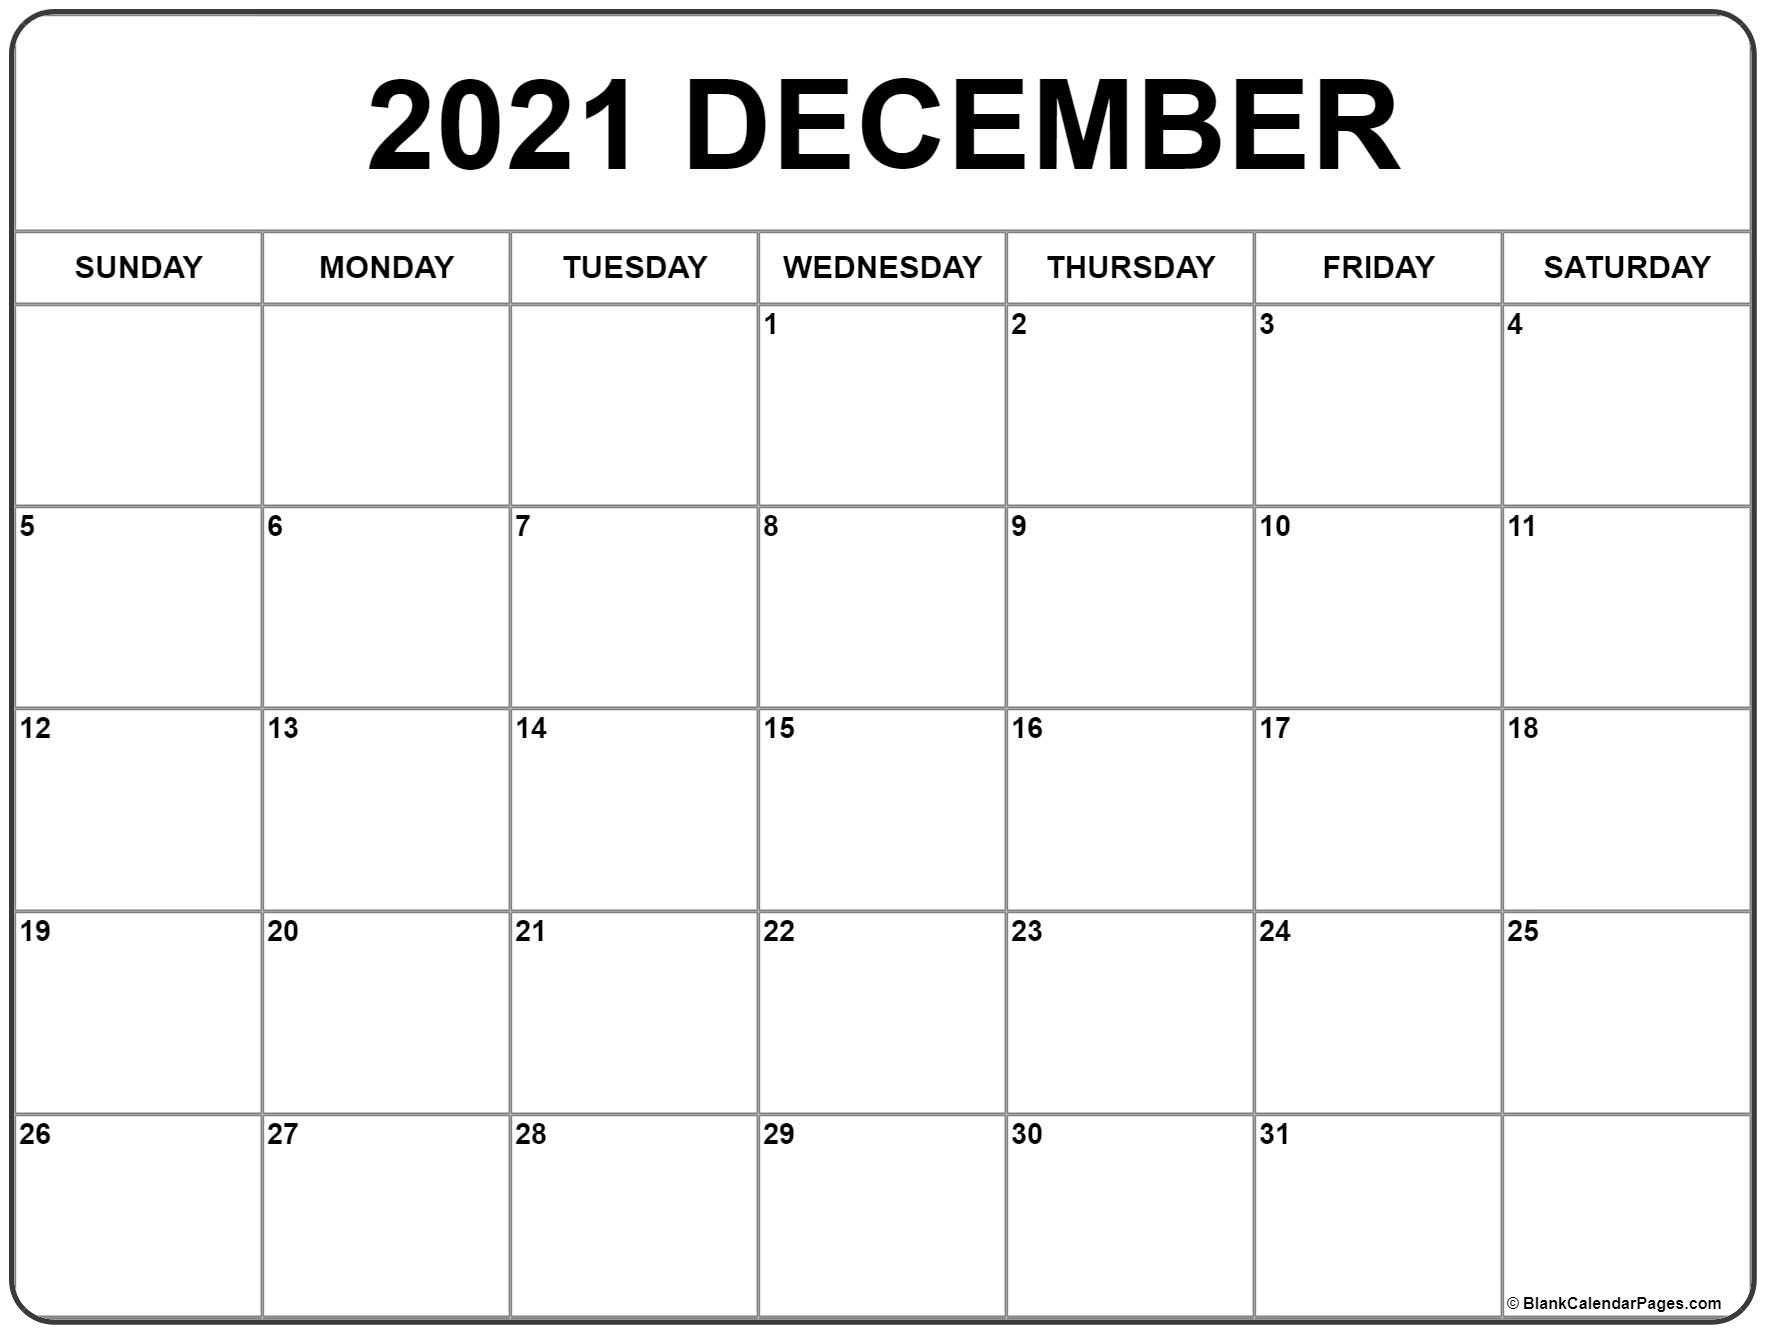 December 2021 Calendar | Free Printable Monthly Calendars